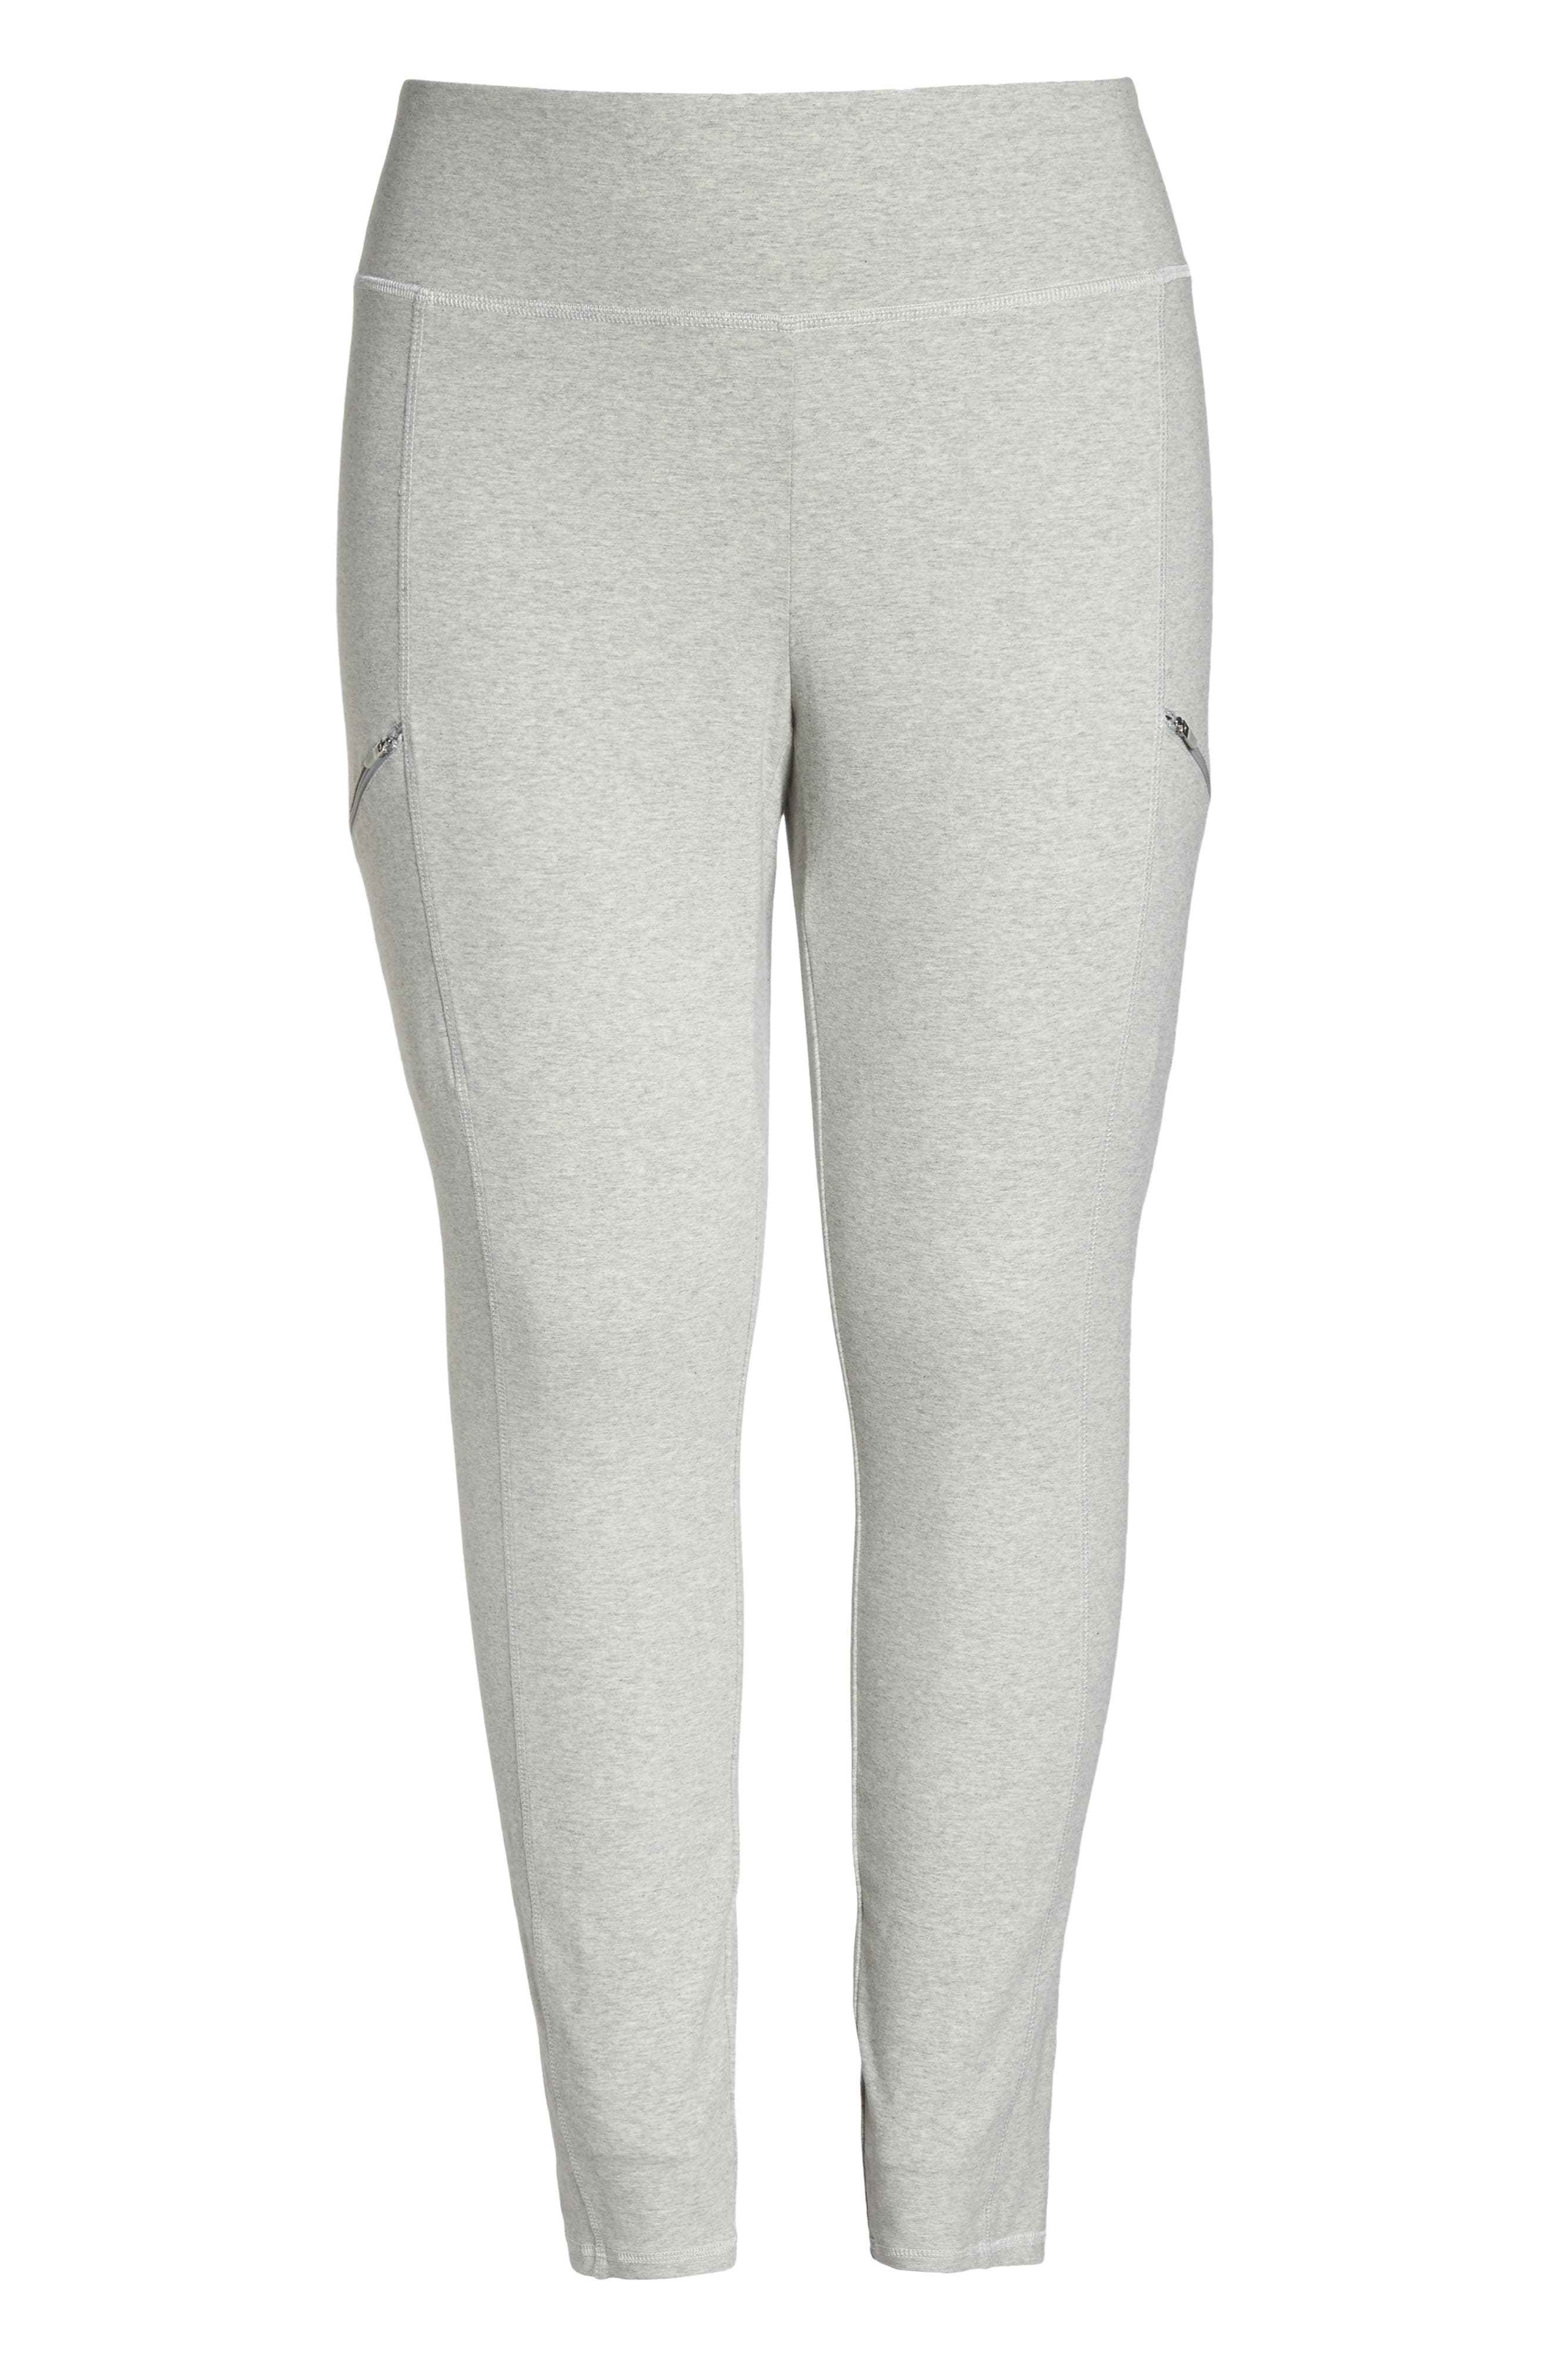 Stretch Organic Cotton Skinny Pants,                             Alternate thumbnail 7, color,                             020